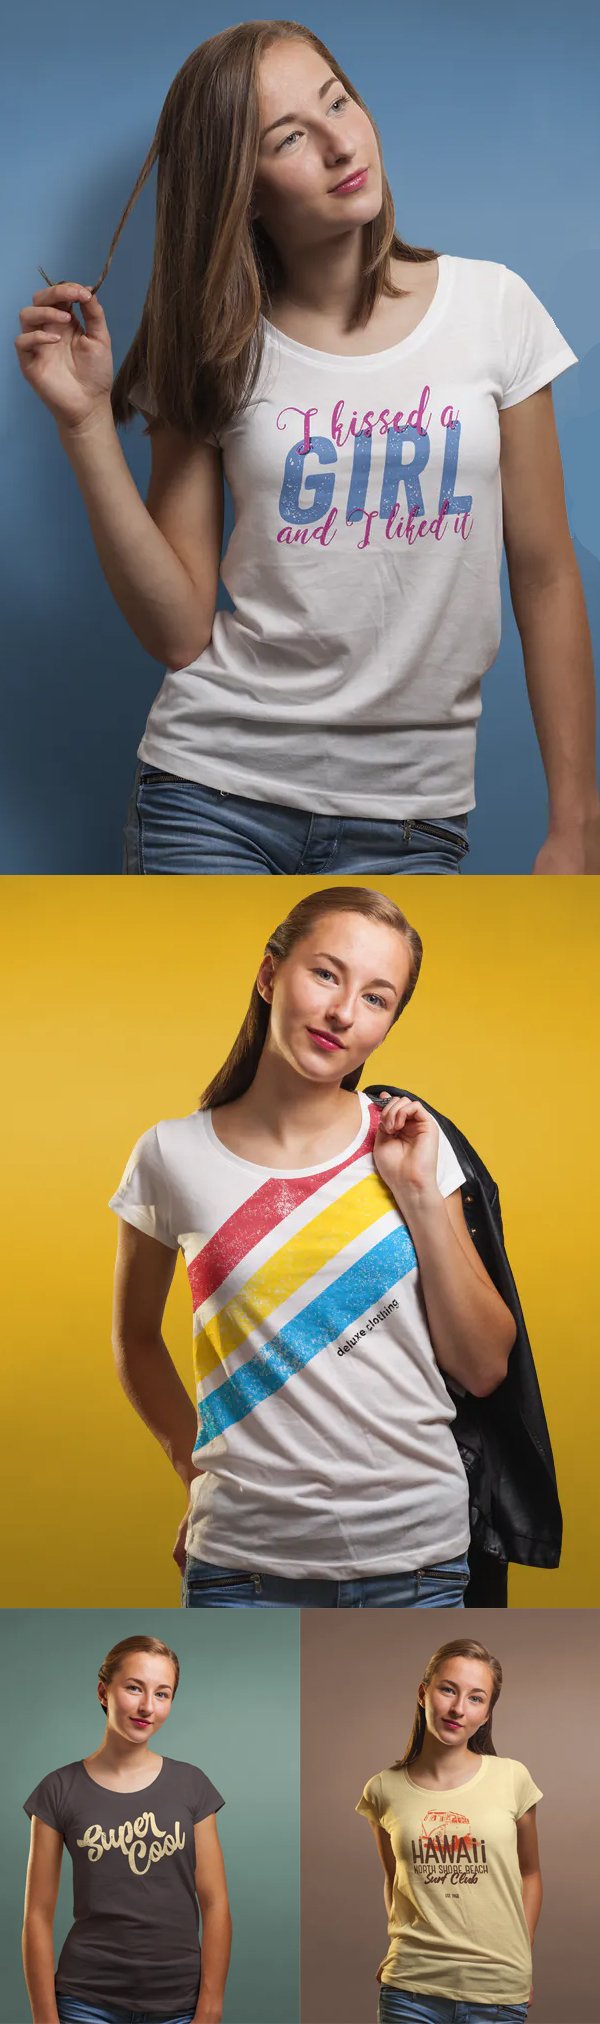 Awesome Neck T-shirt Mock-up